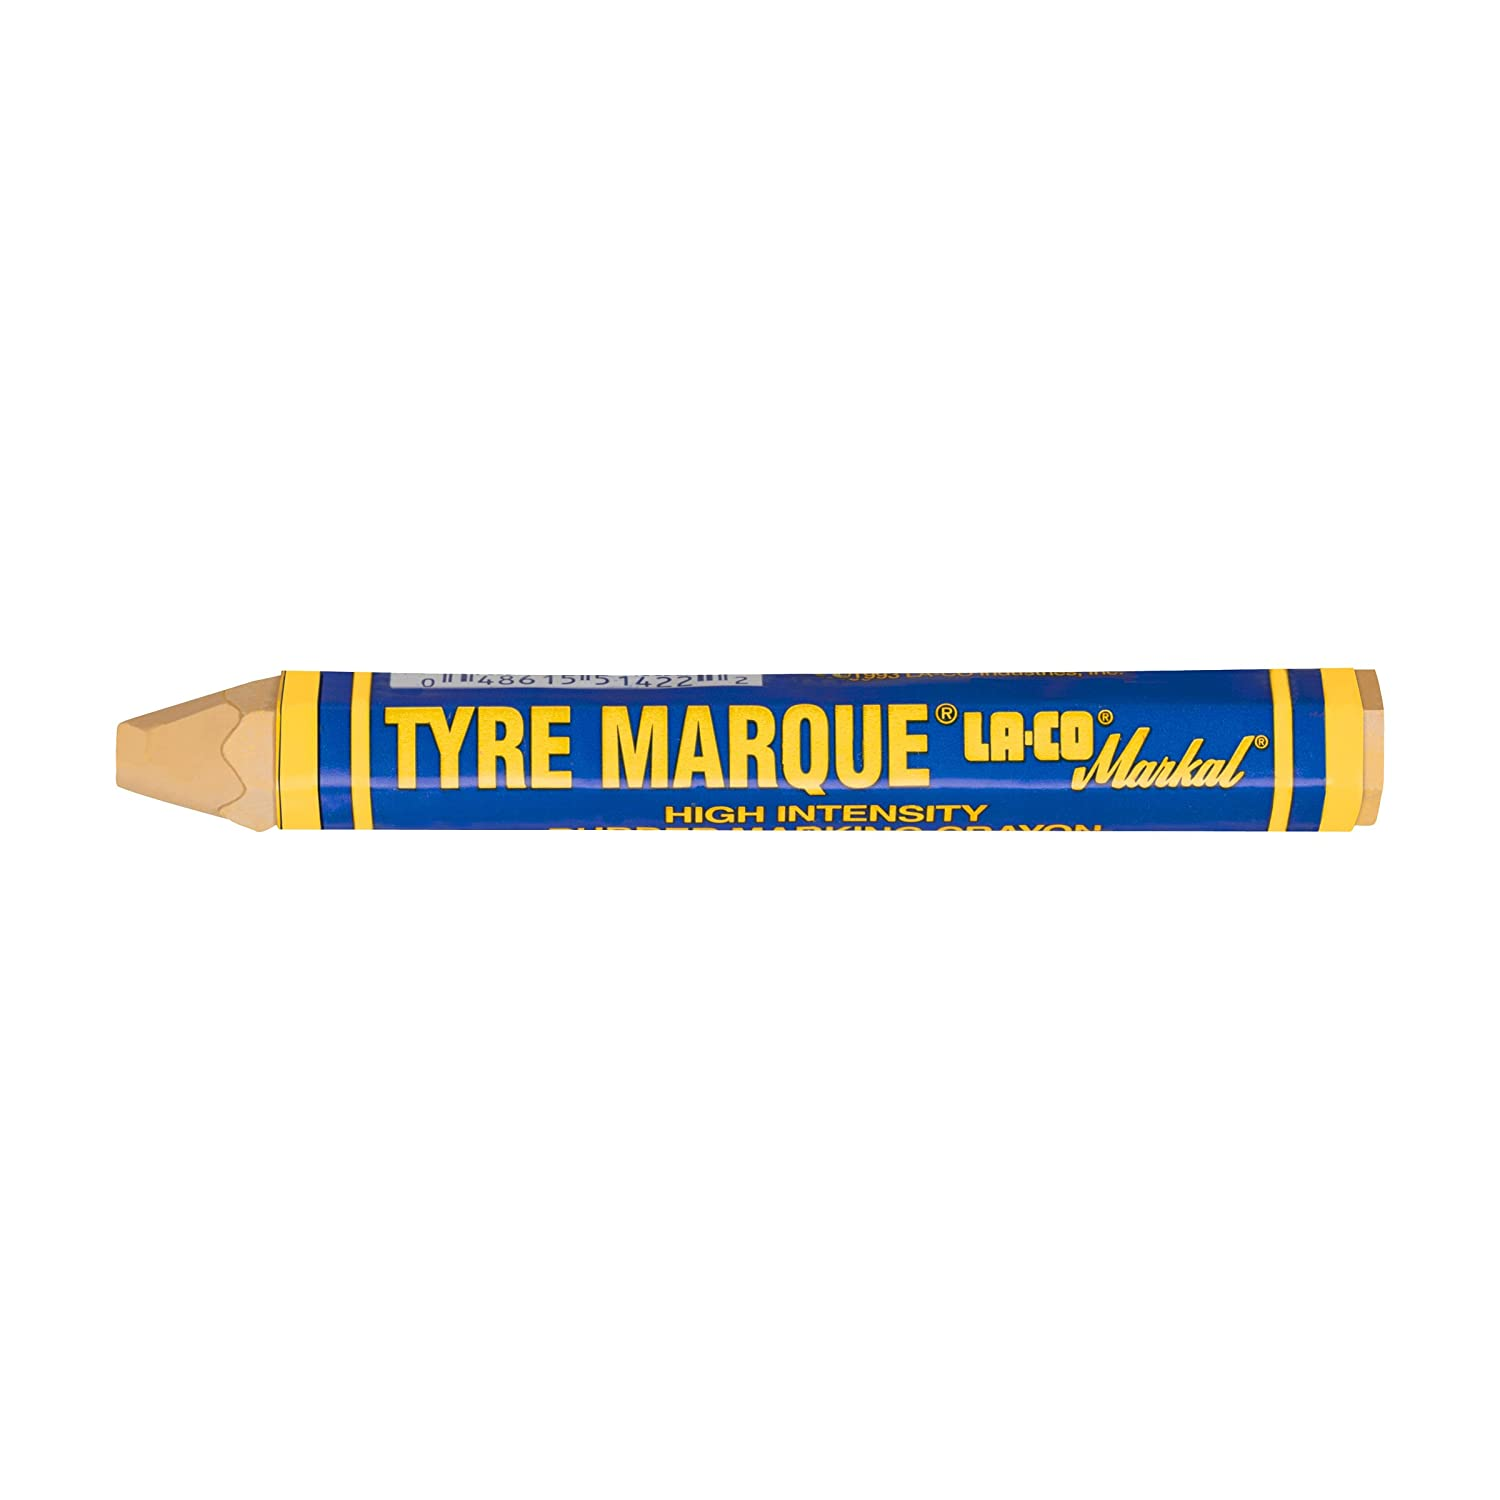 Chalks Car Tyre Marking Crayons 2 x Yellow /& 2 x White Pack of 4